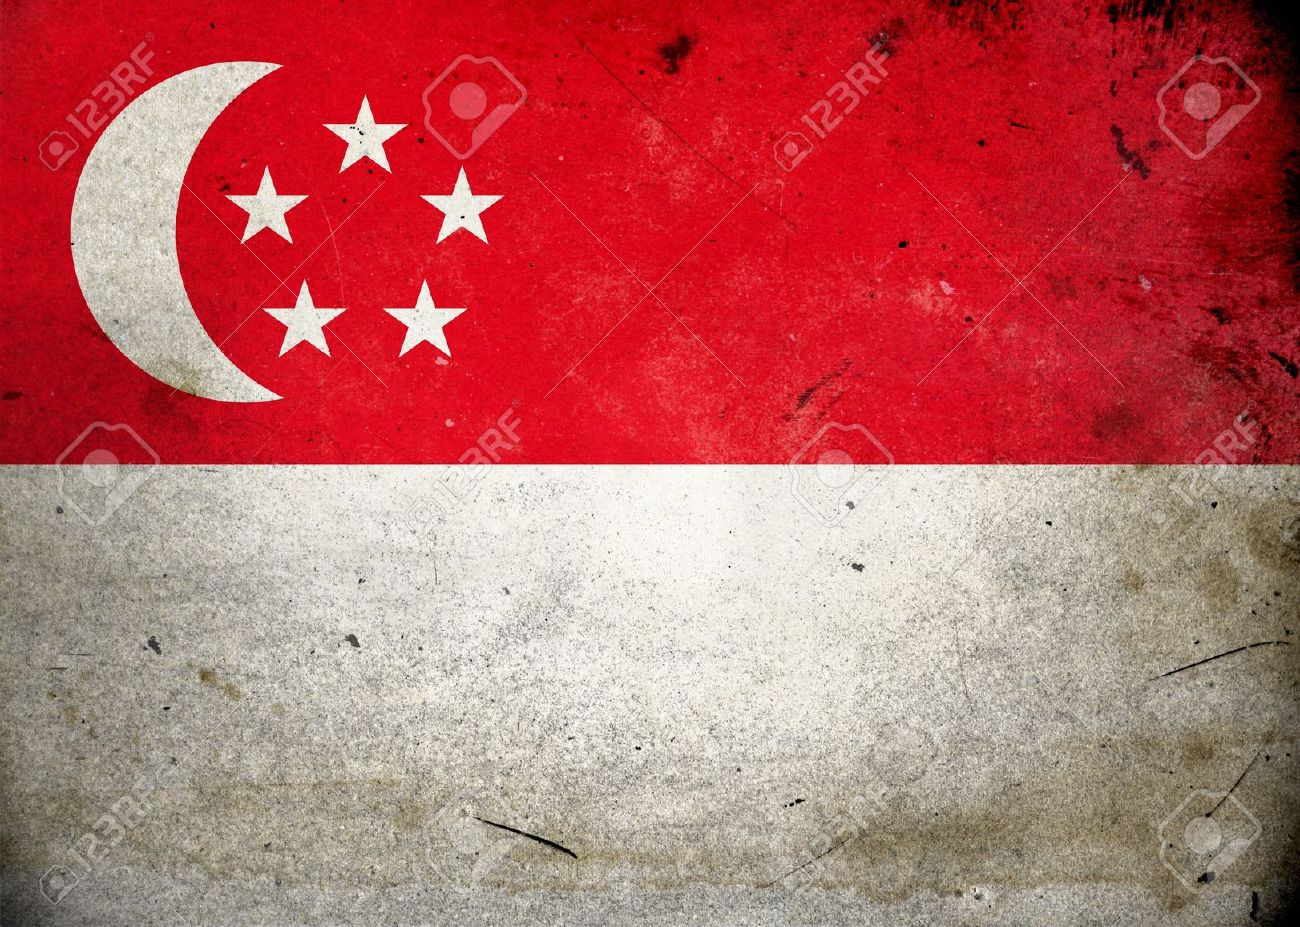 1466767302_12036996-flag-of-singapore-on-old-and-vintage-grunge-texture-stock-photo.jpg